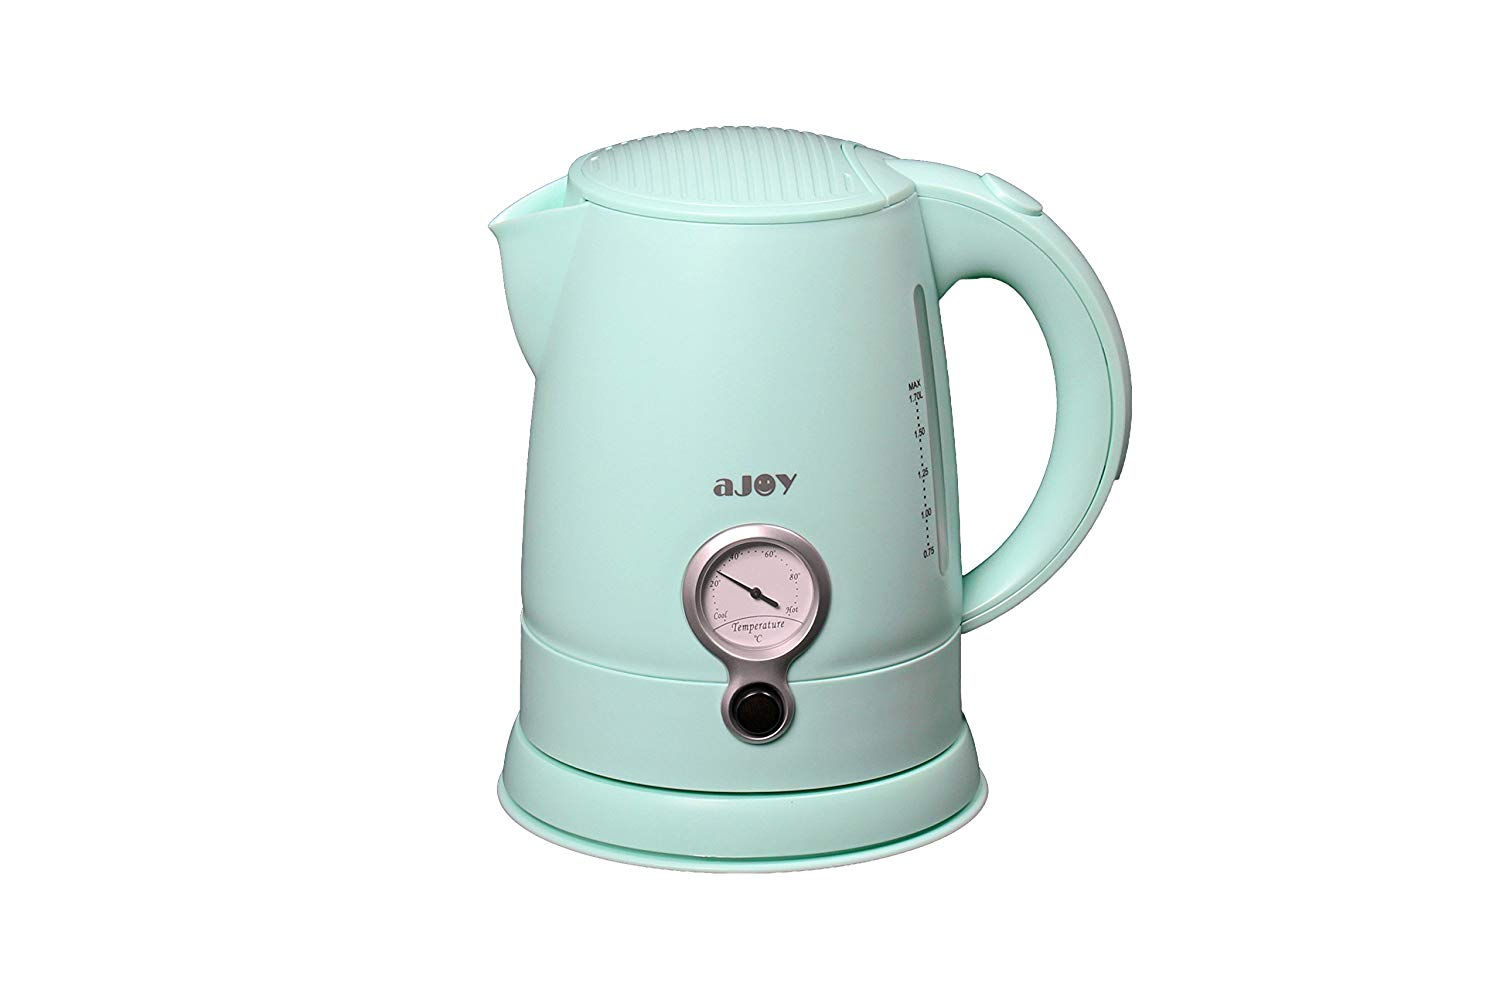 ajoy cordless electric kettle